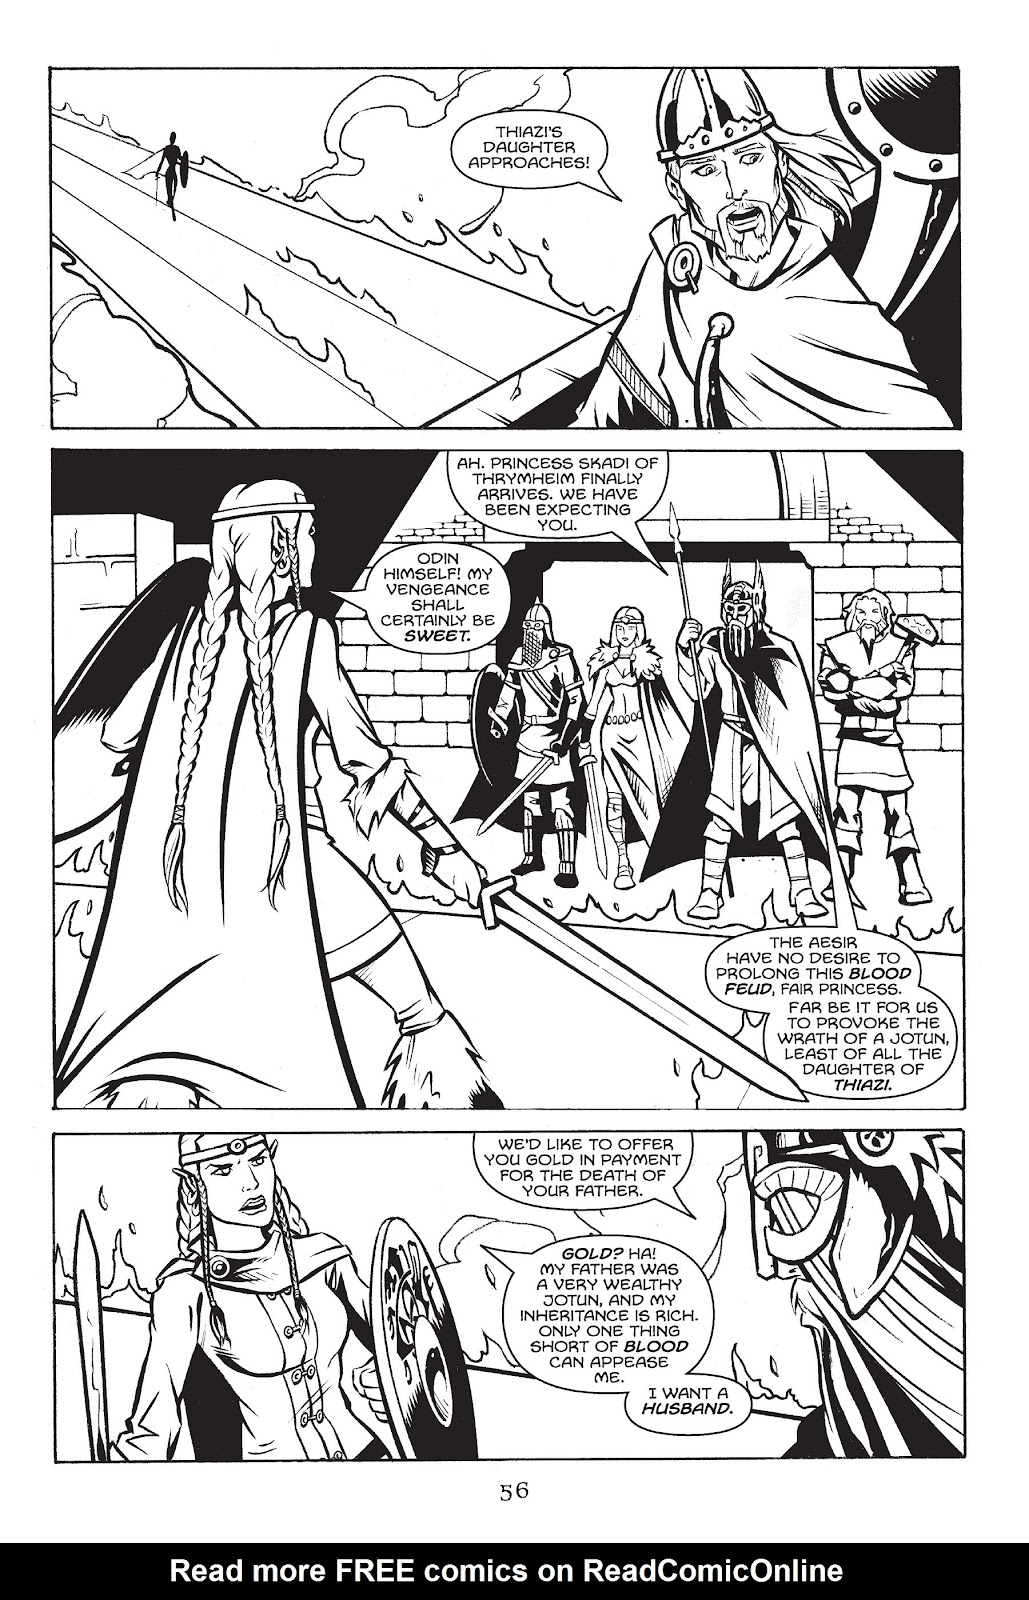 Read online Gods of Asgard comic -  Issue # TPB (Part 1) - 57